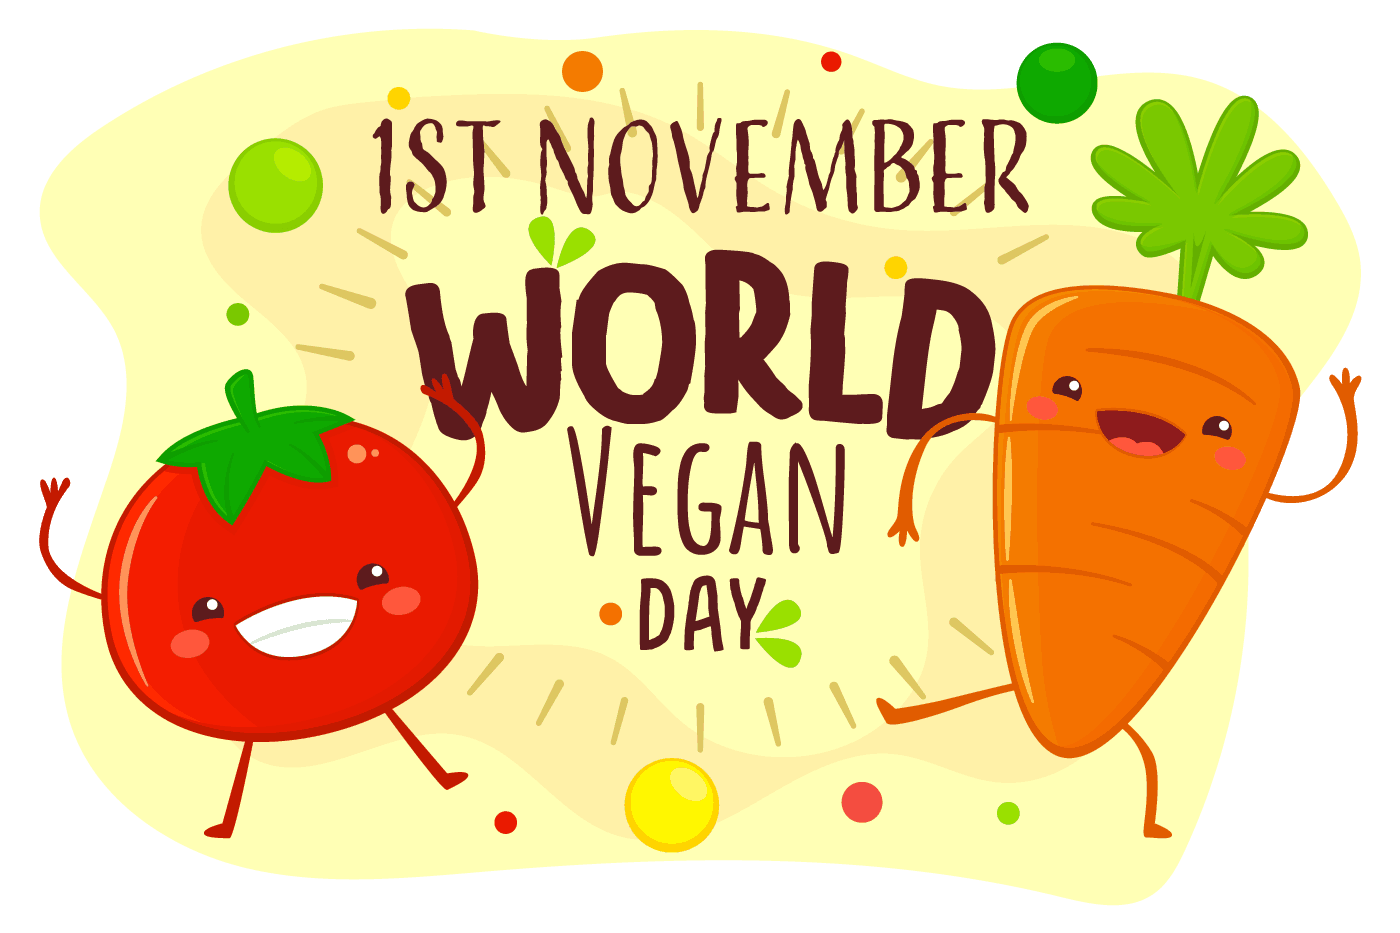 1st november world vegan day